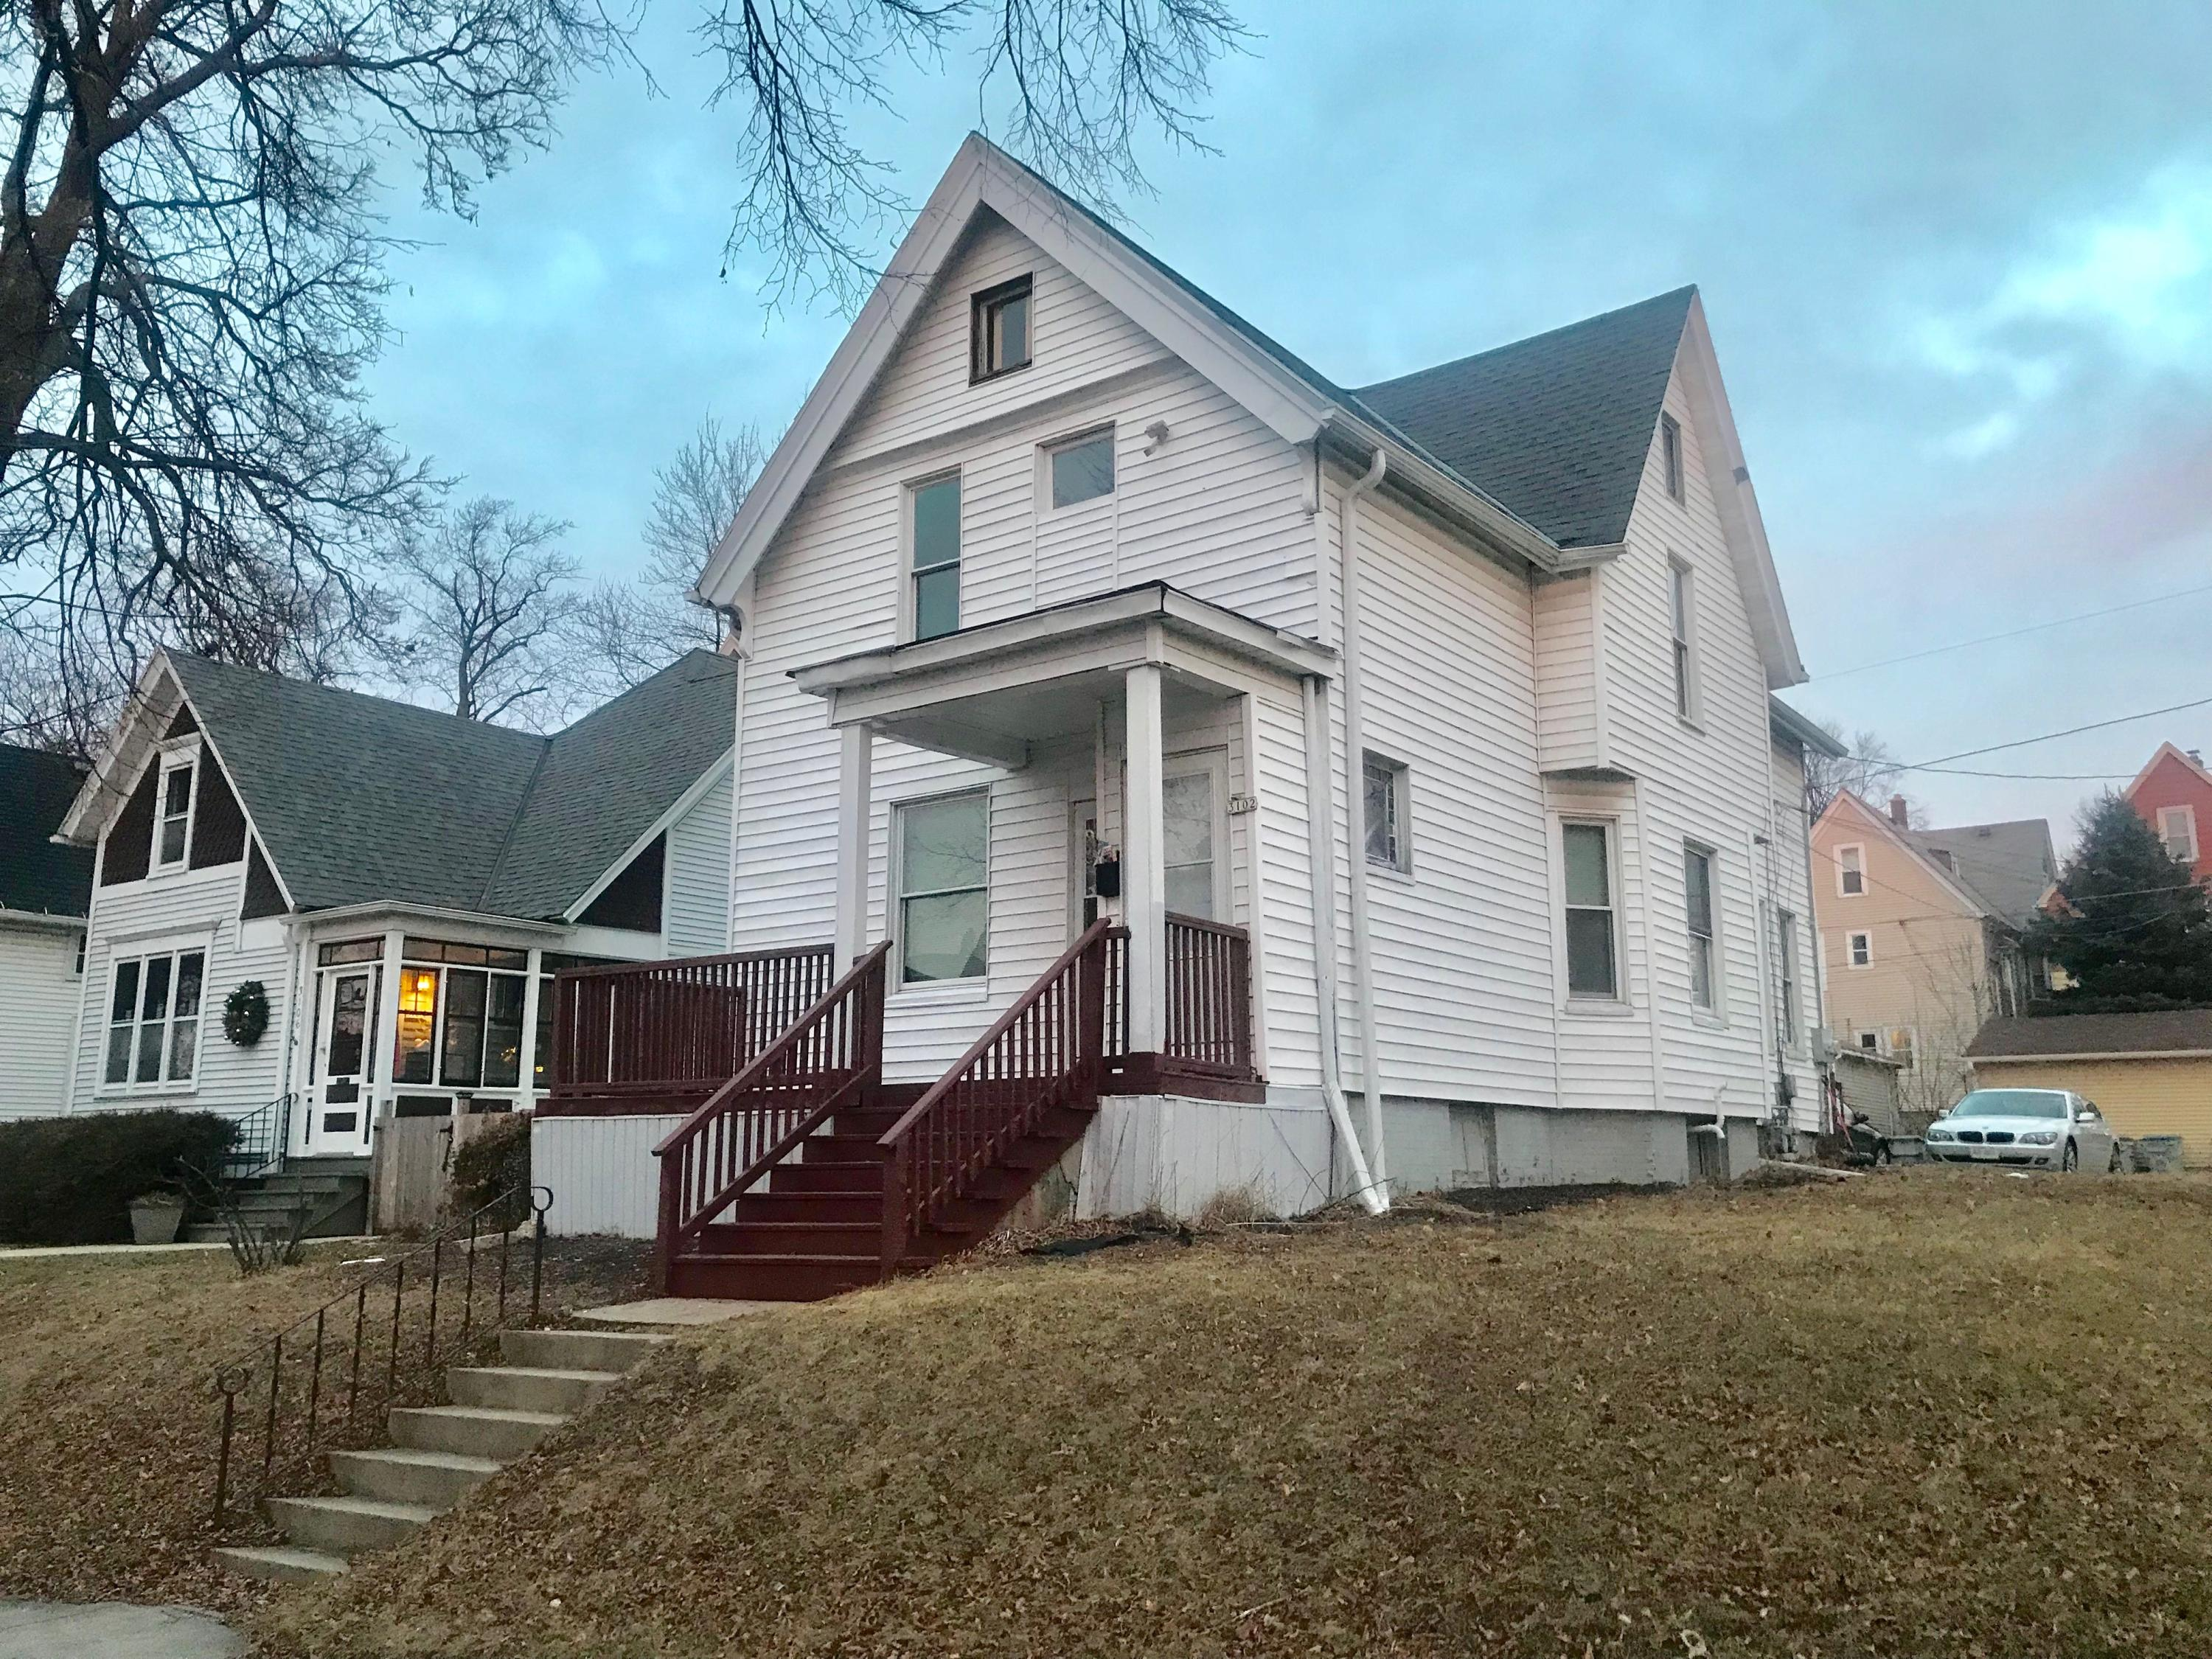 3102 N Newhall St #Upper Milwaukee, WI 53211 Property Image